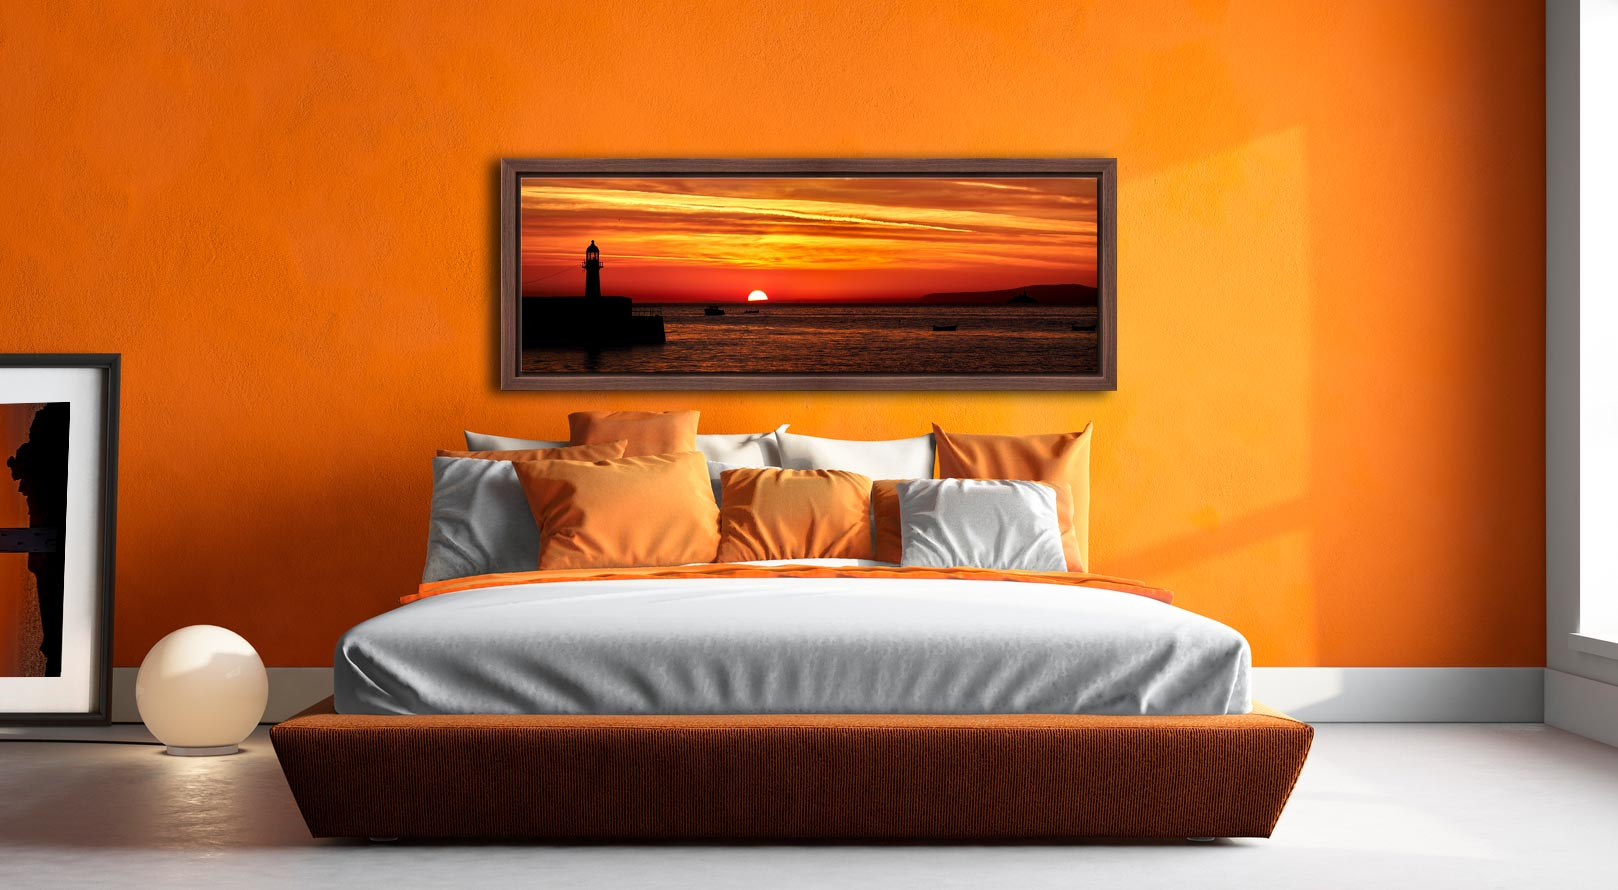 The peeking over the horizon in St Ives Bay in Cornwall. Golden skies above Smeaton's Pier and Godrevy Lighthouse - Walnut floater frame with acrylic glazing on Wall